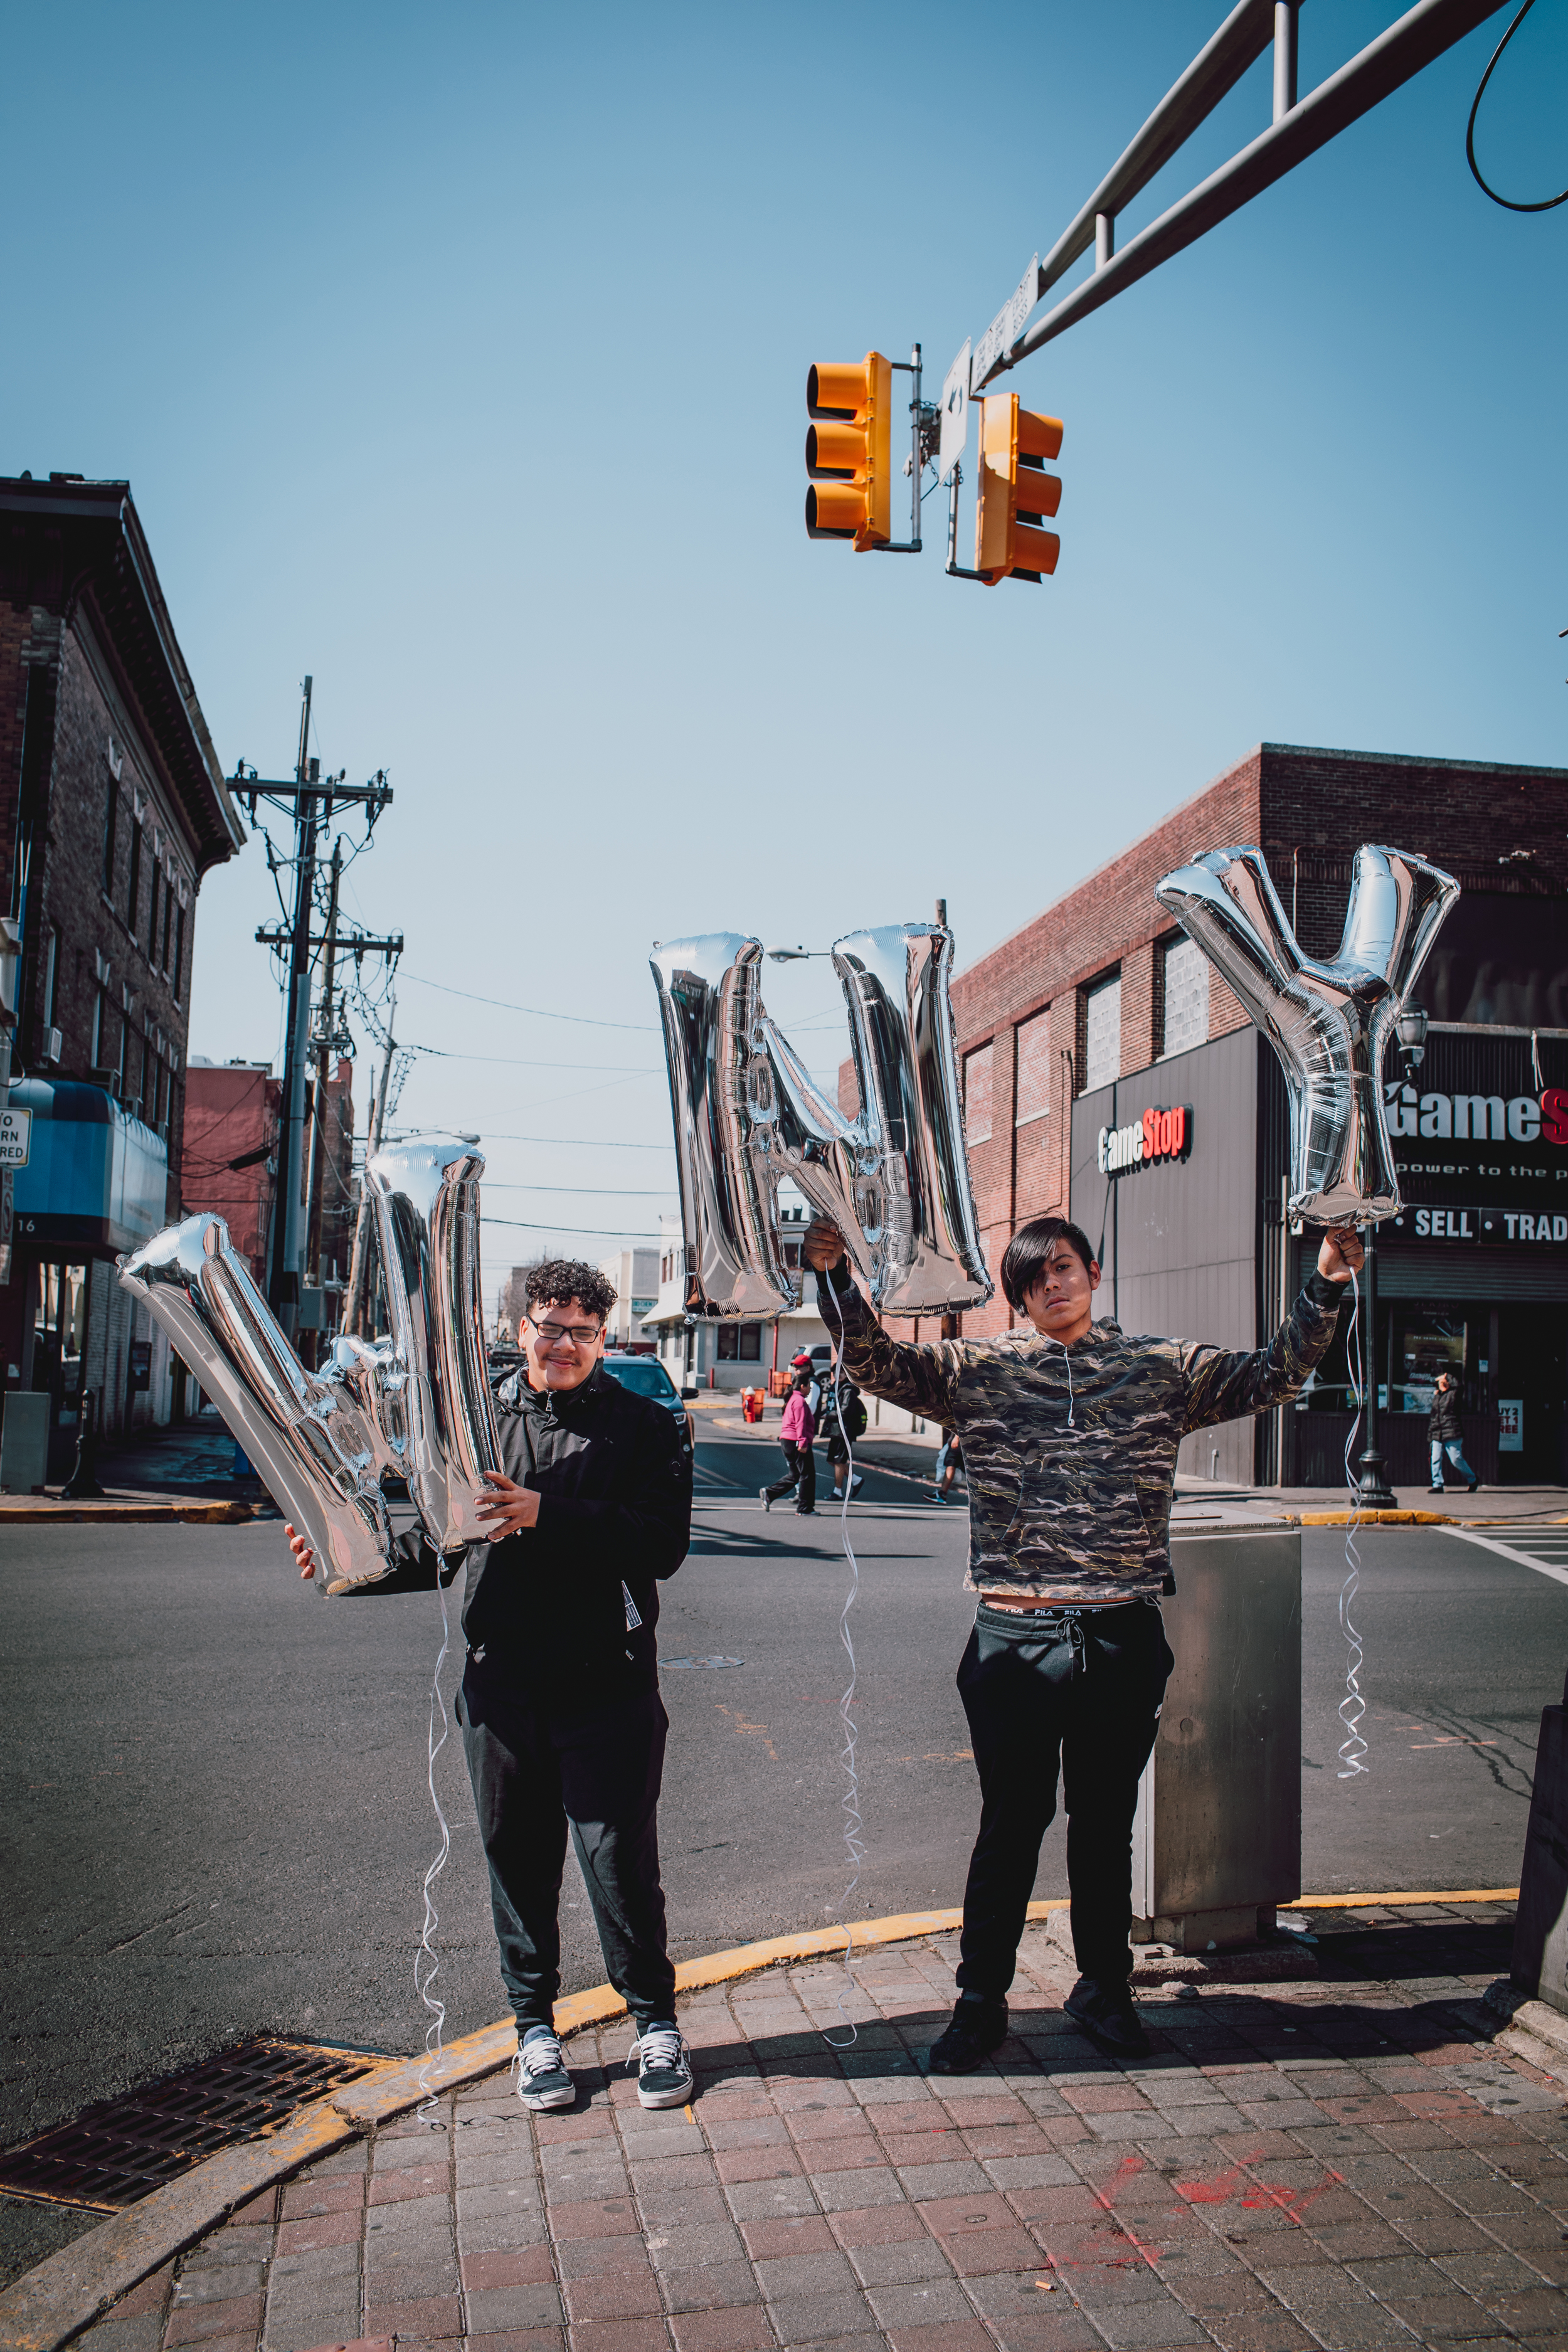 And so we mean it when we tell you: in West New York friendships like these have grow stronger. Adventures are created and they lead our youth to explore and enjoy the sun just a little bit longer. -